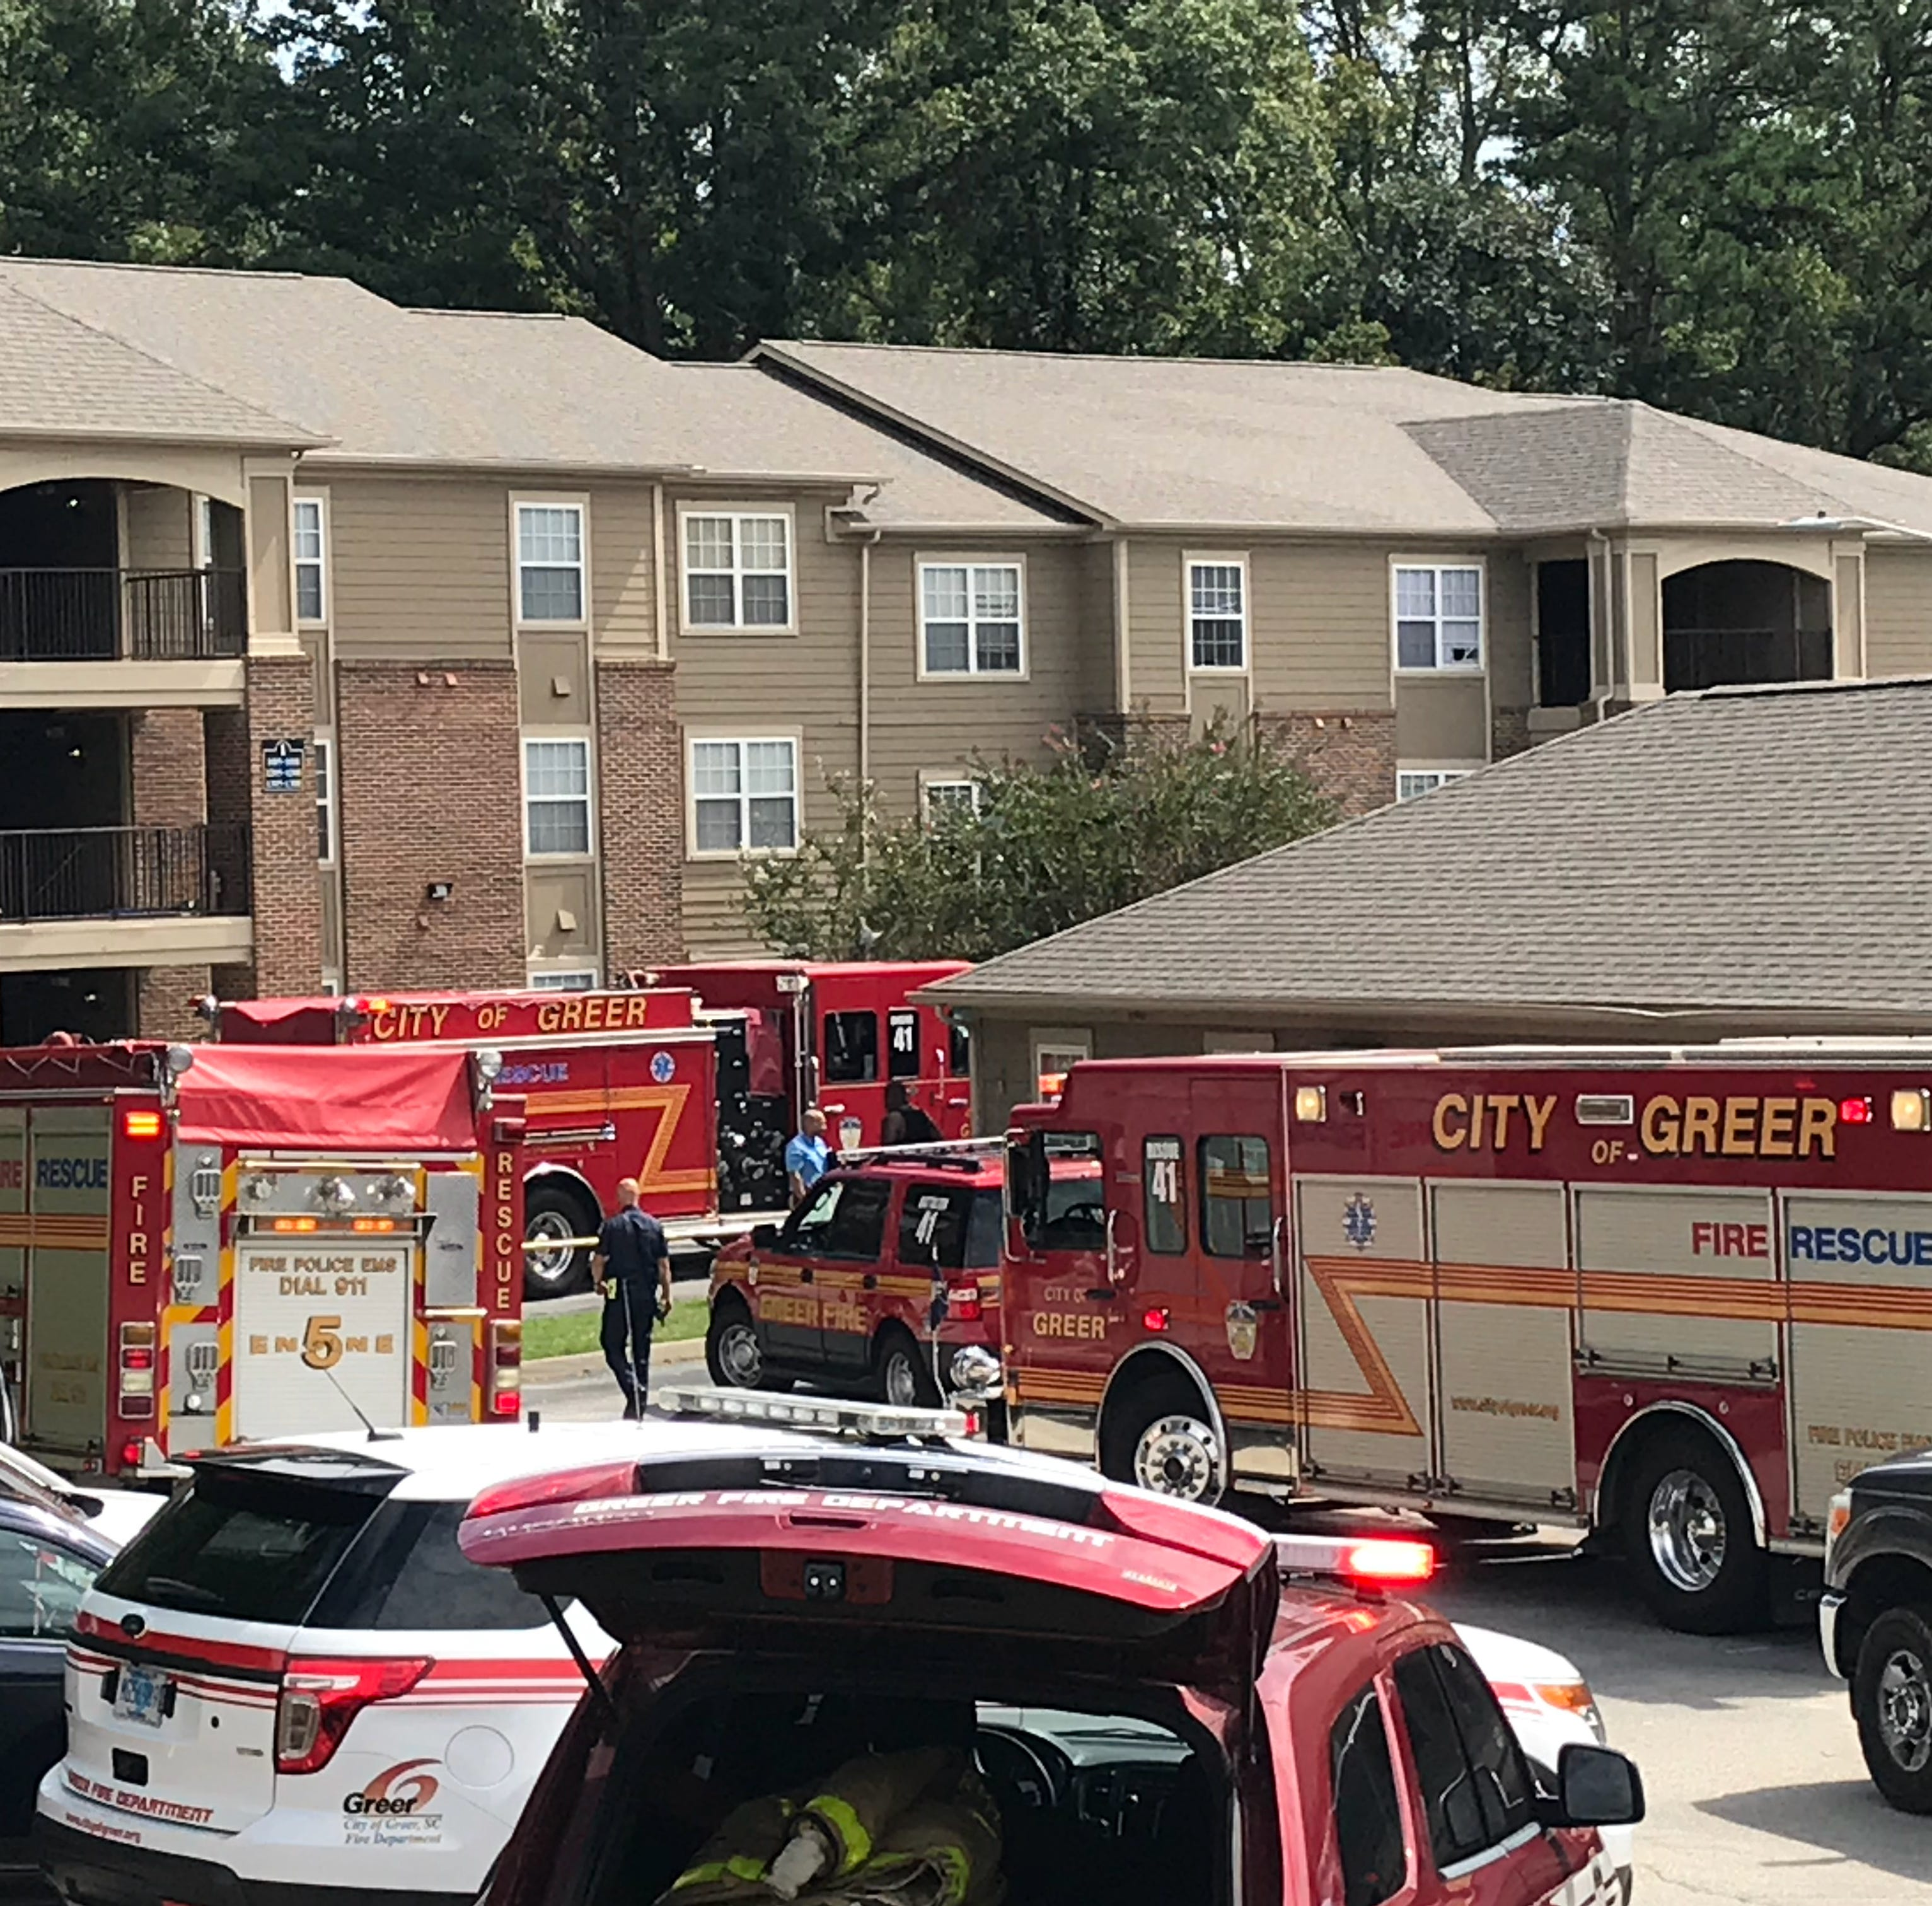 Deaths at Greer apartment fire ruled double homicide